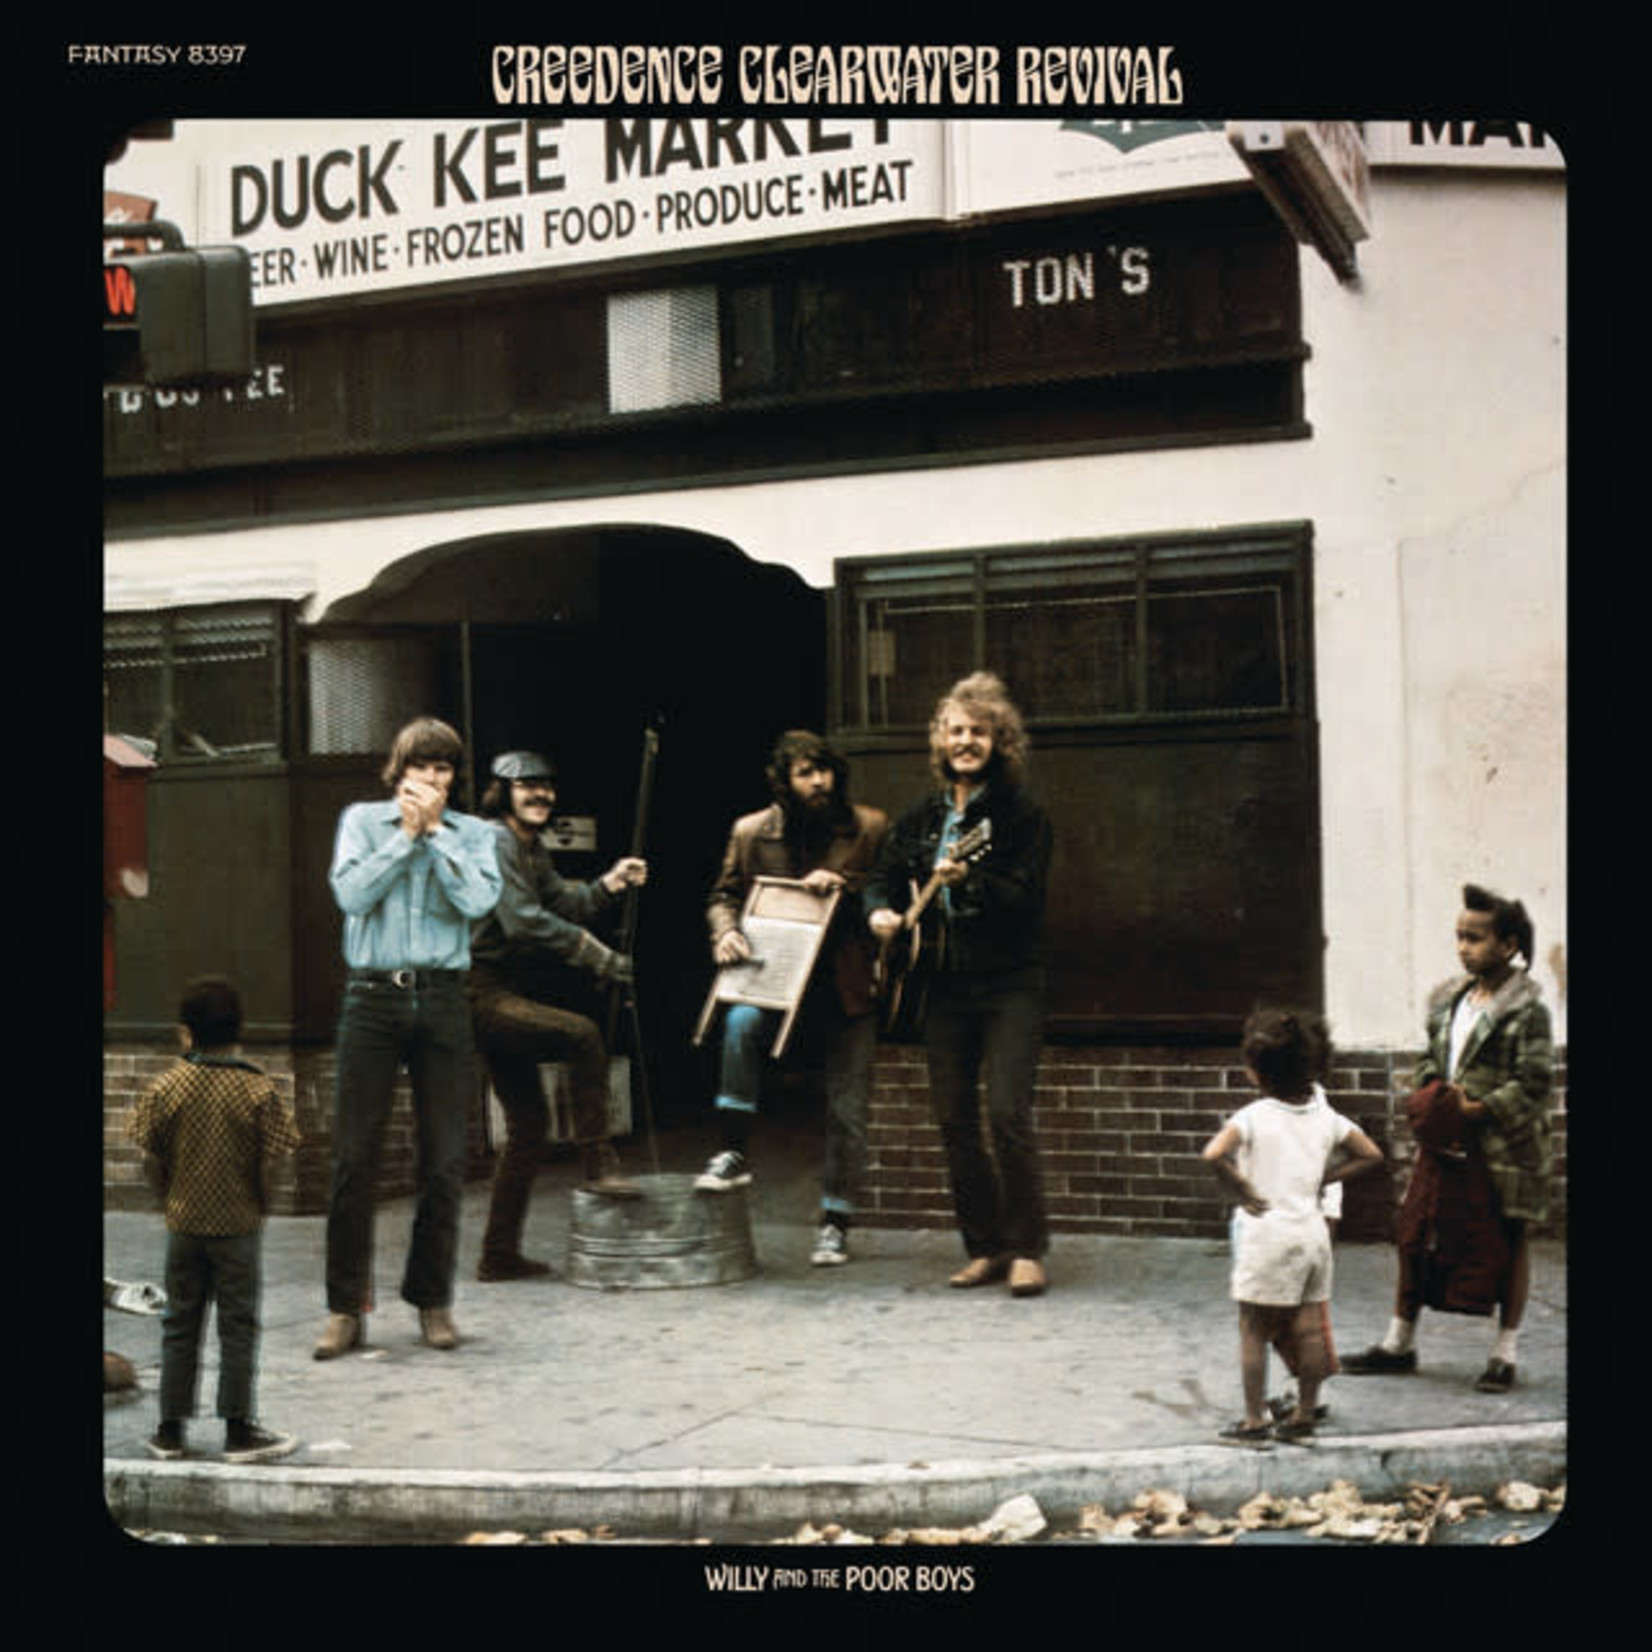 Vinyl Creedence Clearwater Revival - Willy And The Poorboys